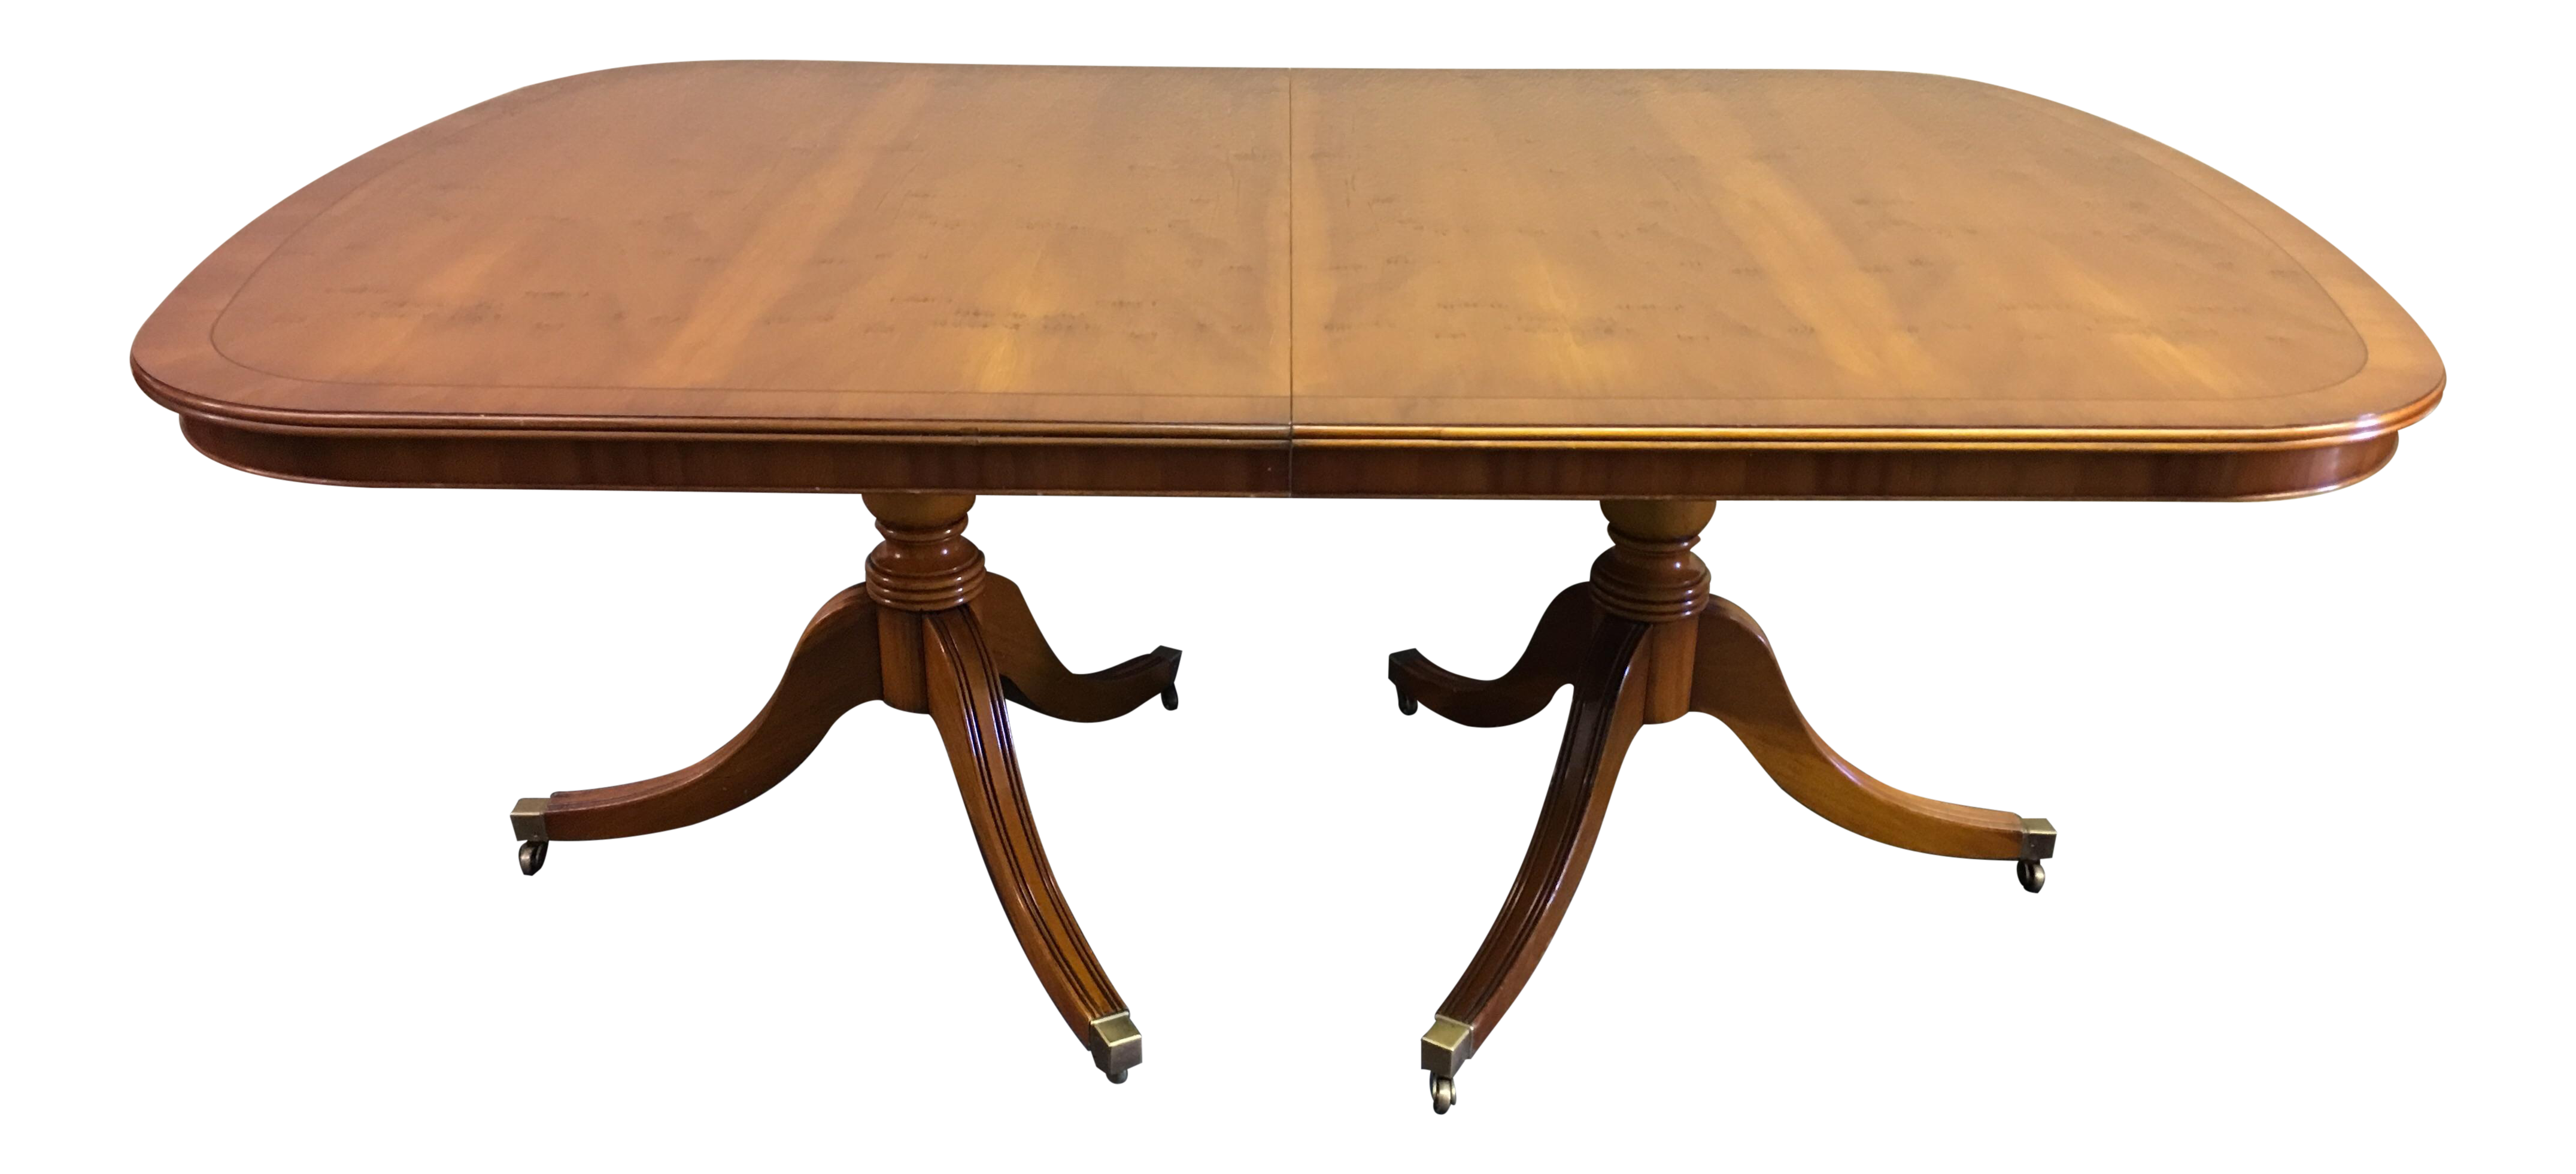 Bevan Funnell Ltd English Dining Table Chairish